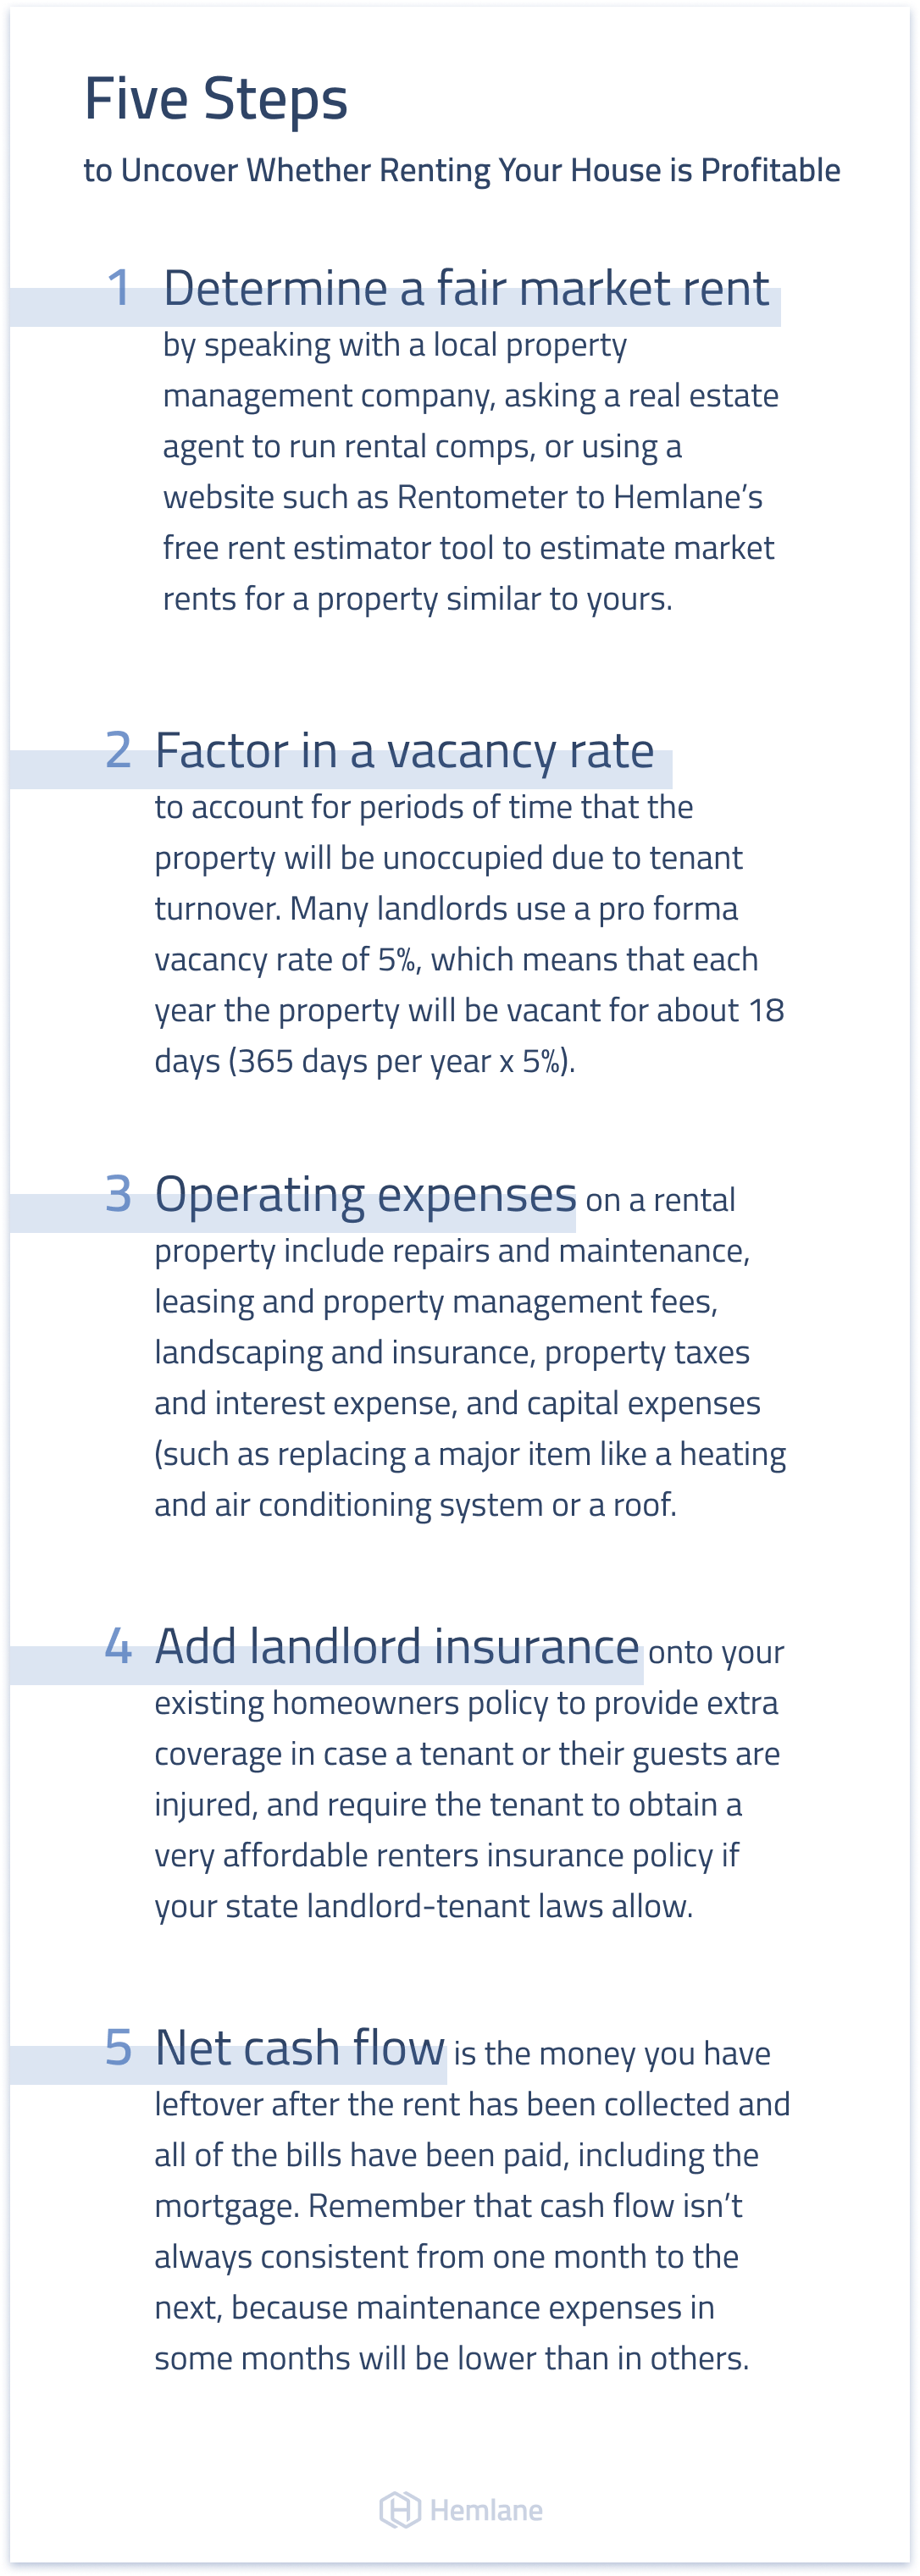 Find out whether renting out your home will be profitable